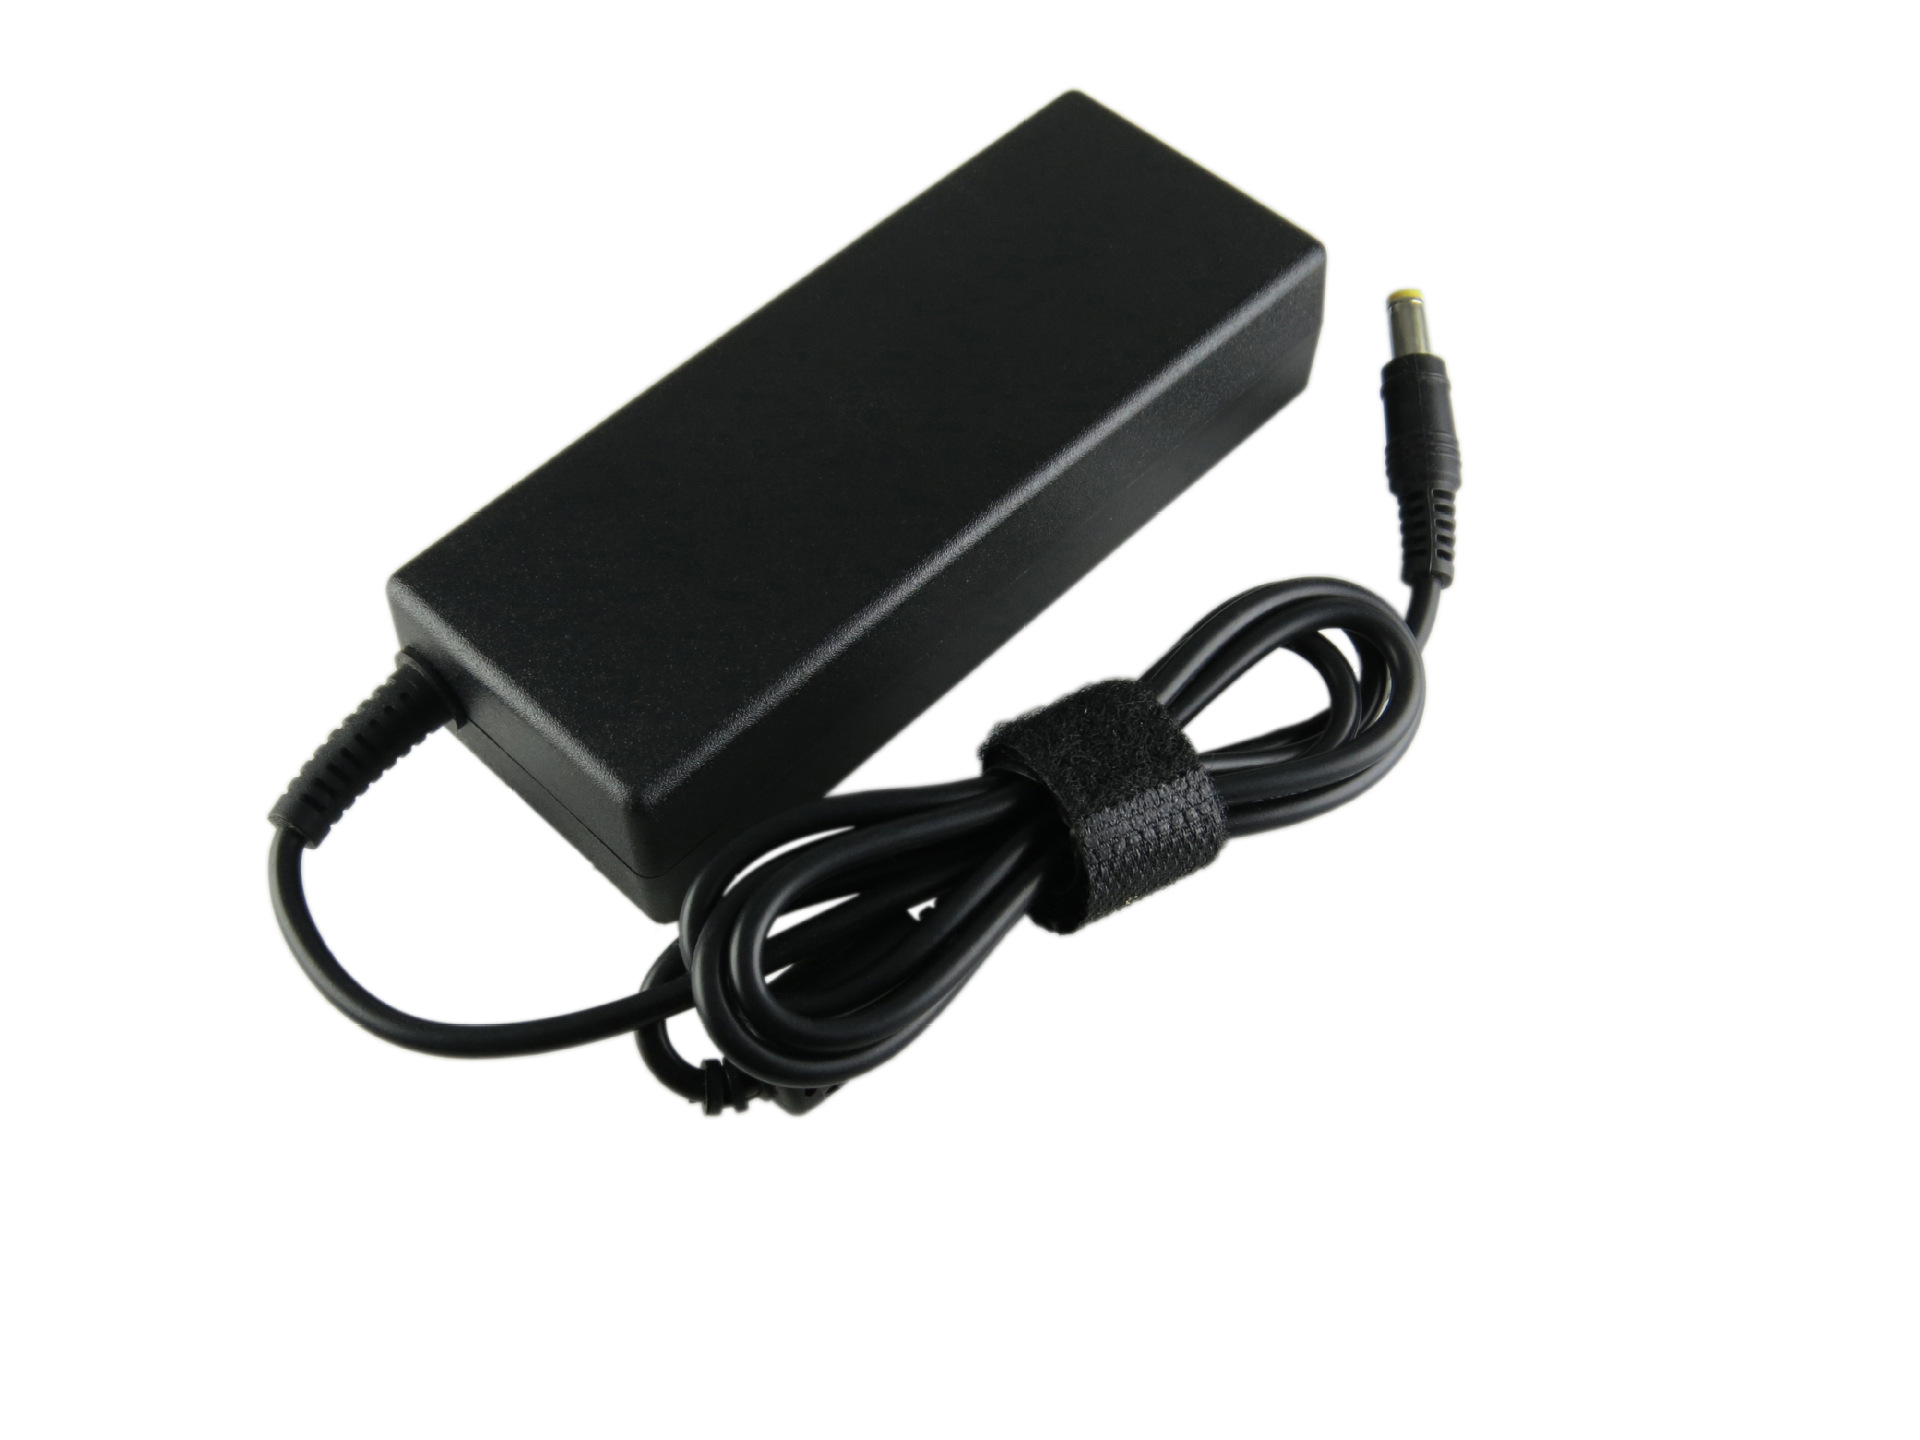 19V 4 74A 90W Laptop Ac Power Adapter Charger For Acer Aspire 4710G 4720G 4730 492Ac 3020 5020 8200 4910 5551 5552 5 5Mm 1 7Mm in Laptop Adapter from Computer Office